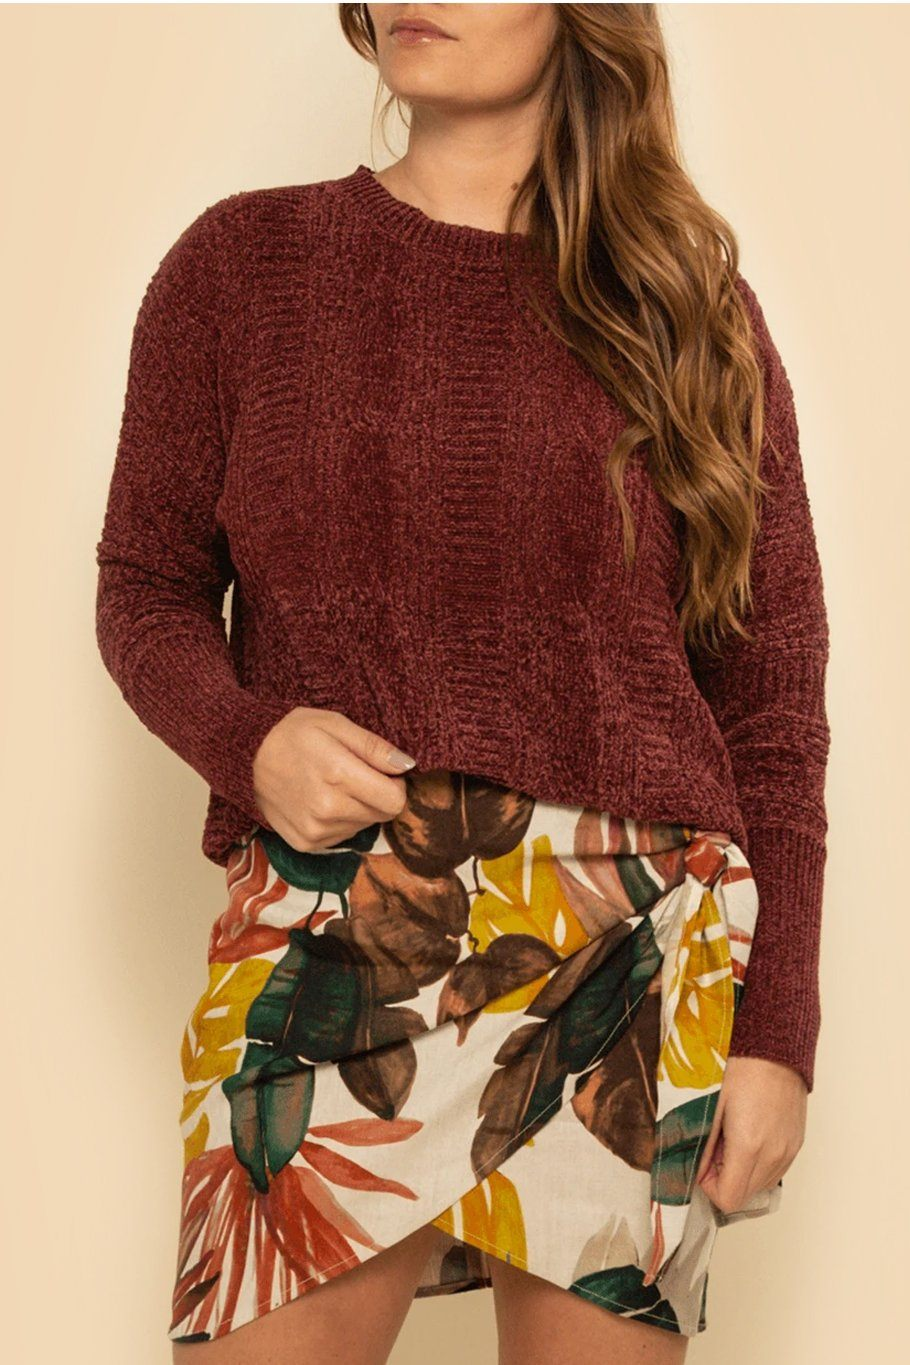 Fairbanks Sweater - Wine - Shore